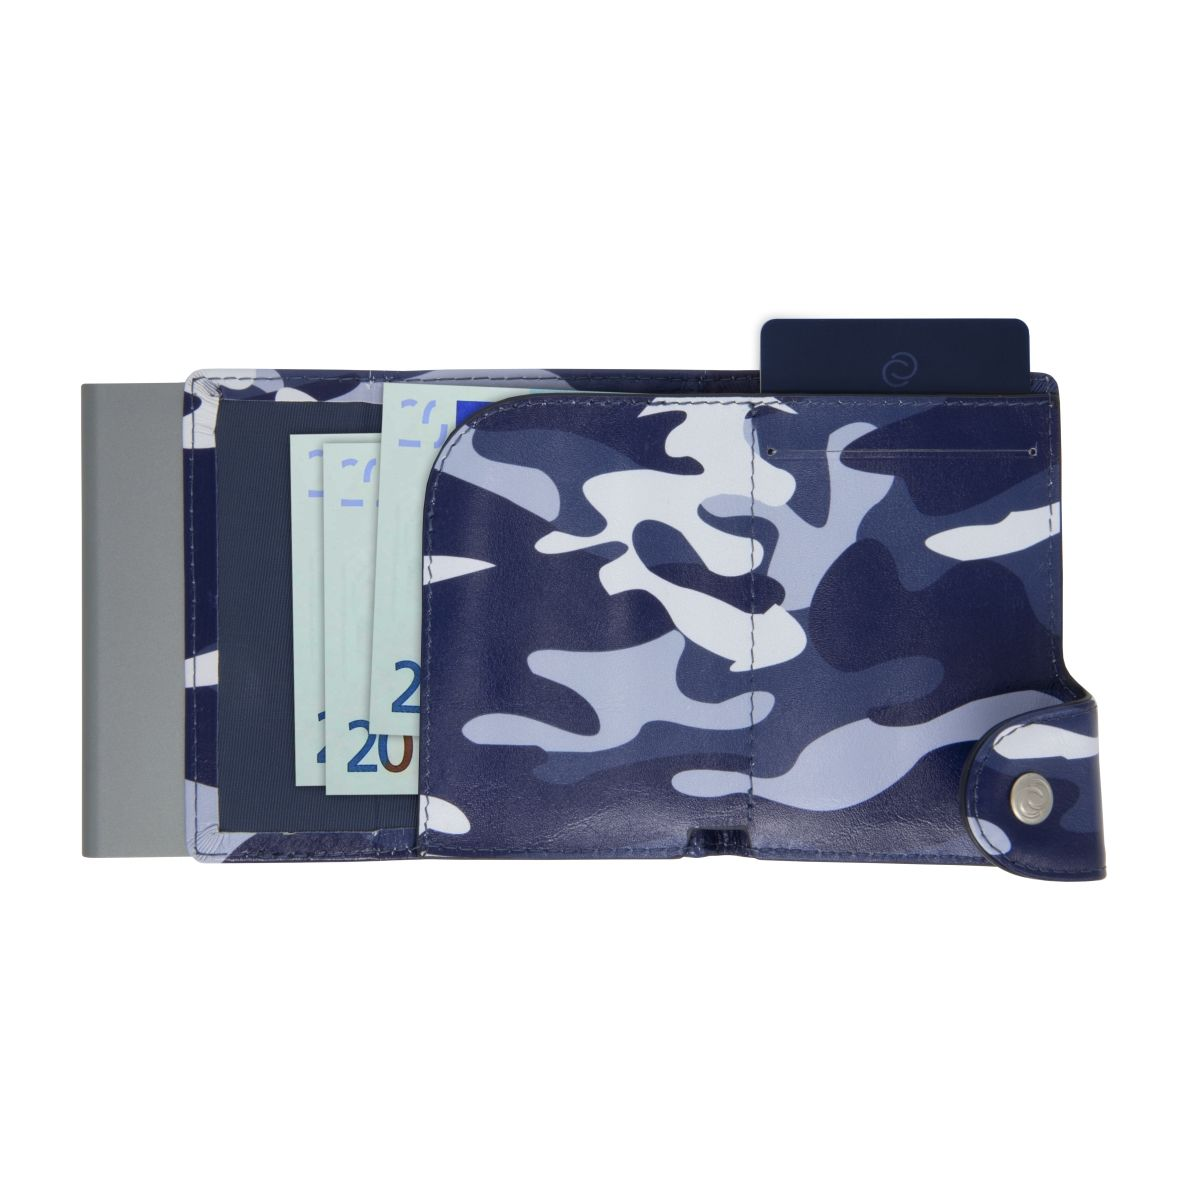 C-Secure Aluminum Card Holder with Genuine Leather - Camo Blue